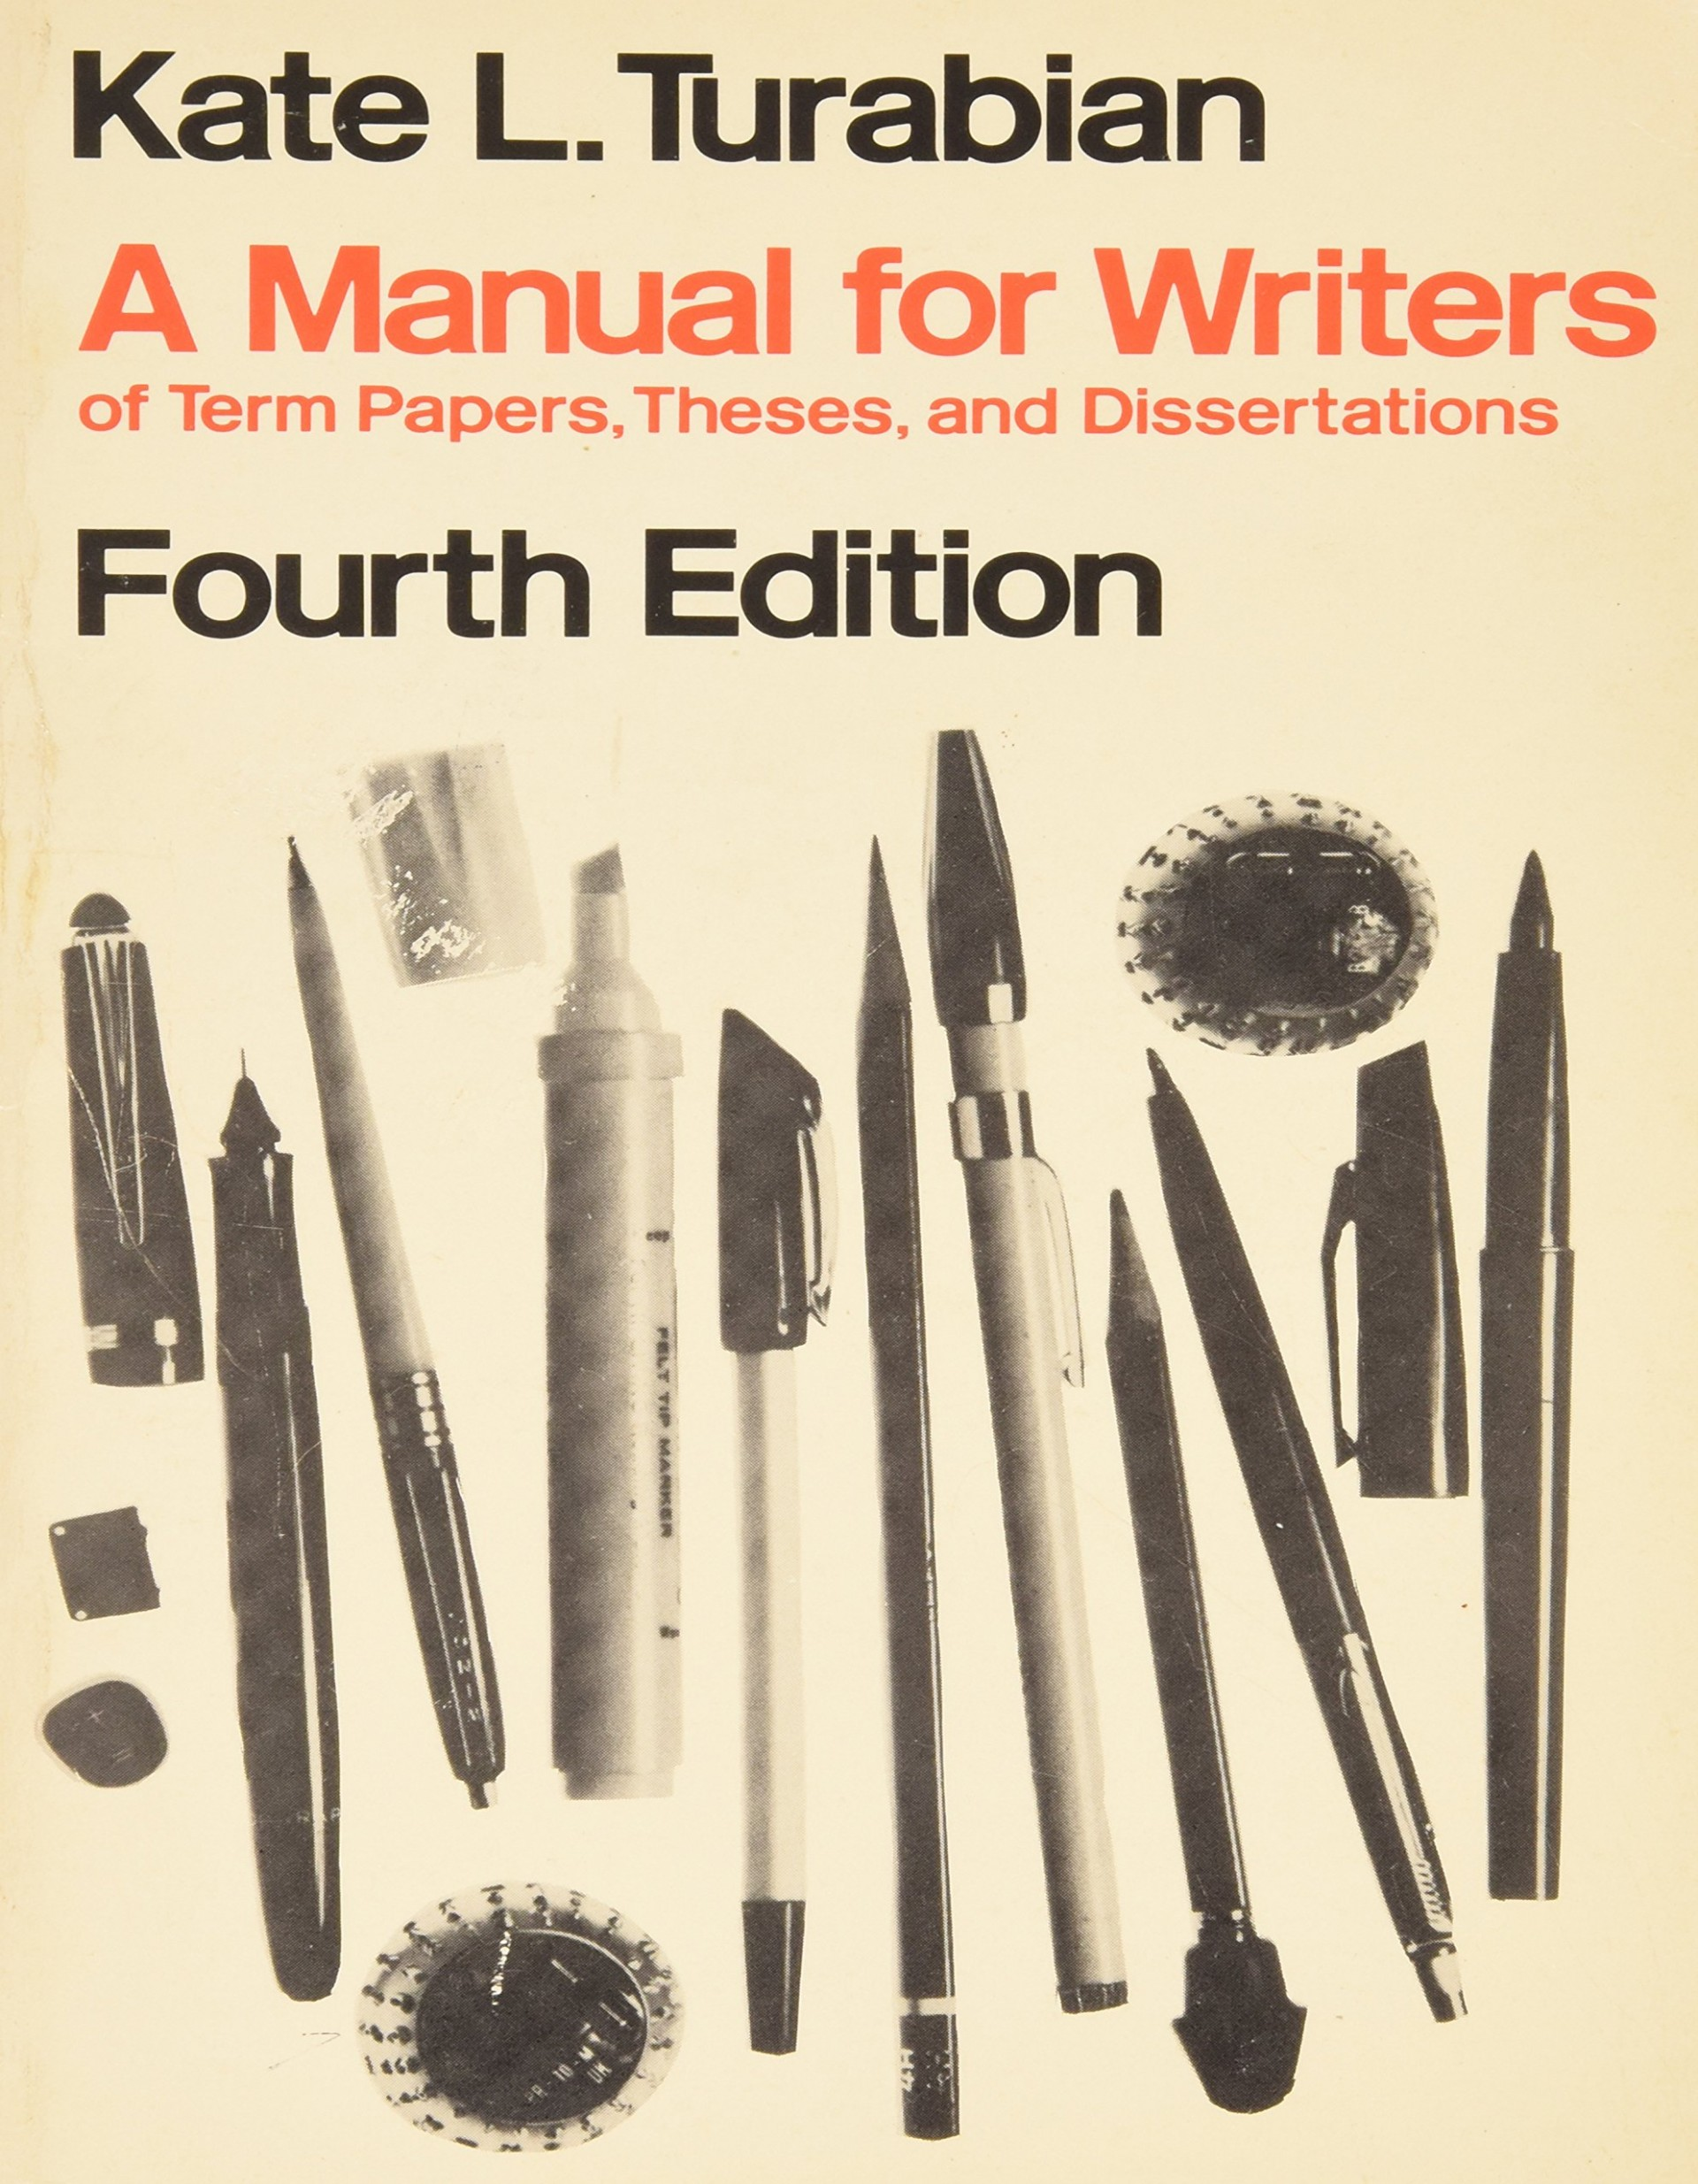 003 Manual For Writers Of Research Papers Theses And Dissertations Paper Fearsome A Ed 8 1920